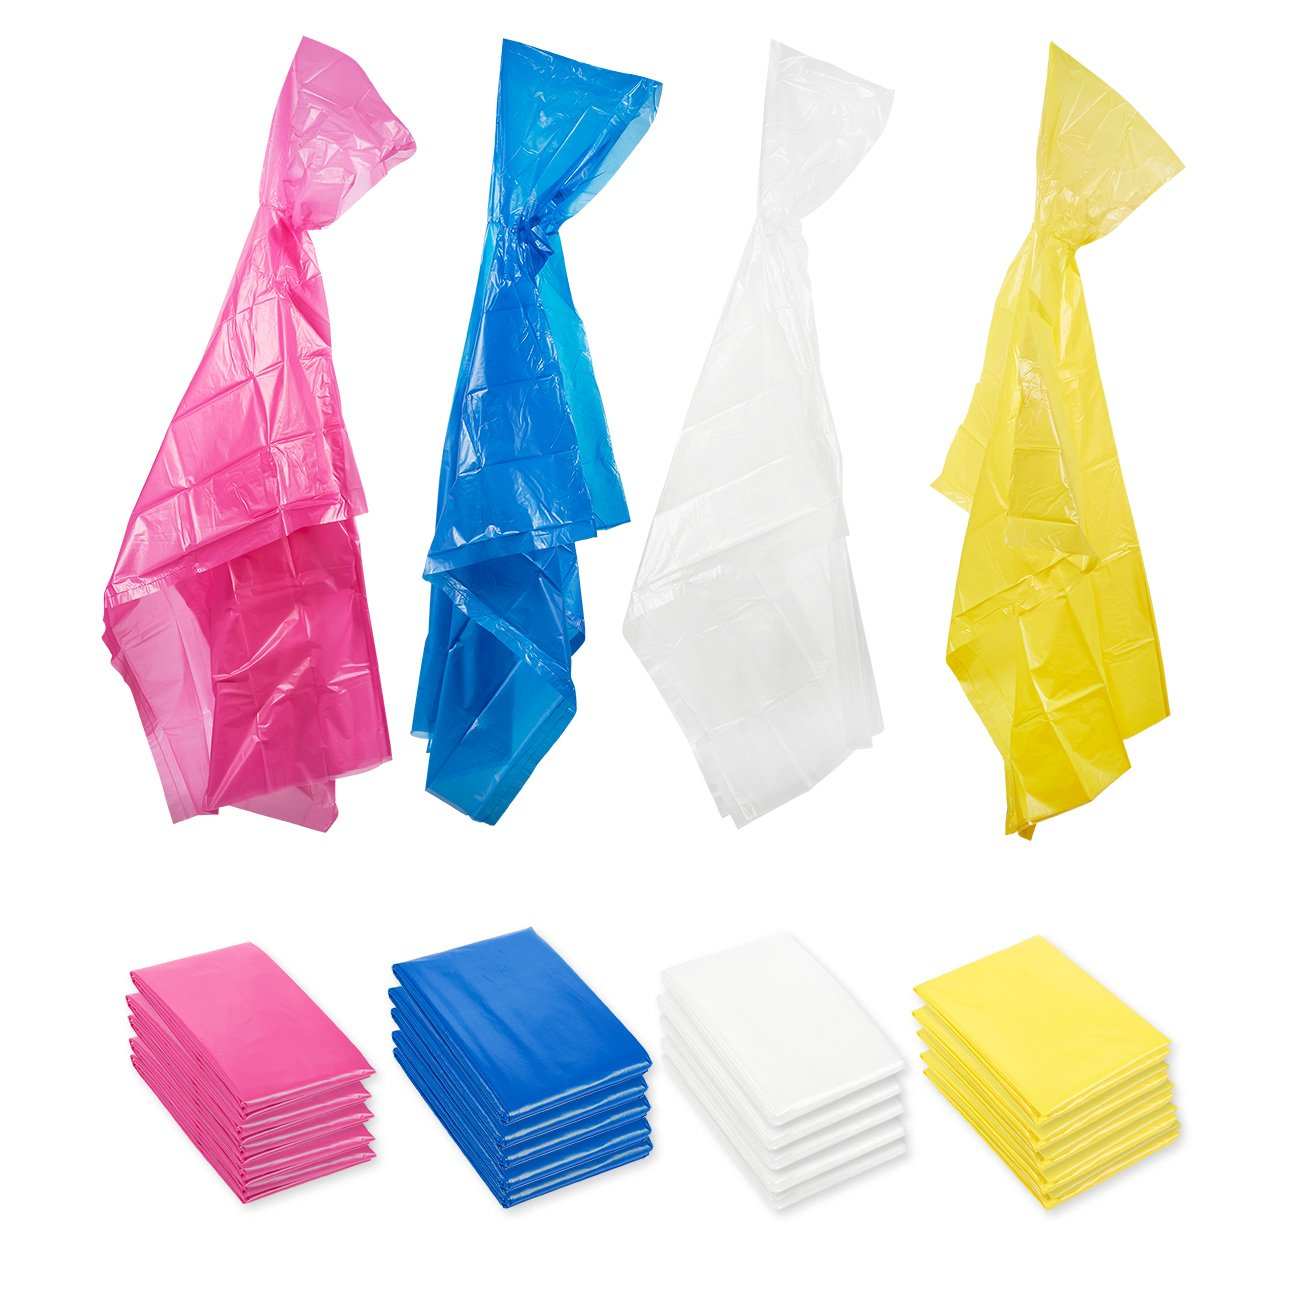 Juvale Adult Rain Ponchos - Disposable 20 Pack- Assorted Colors, 49.5 x 48.5 Inches by Juvale